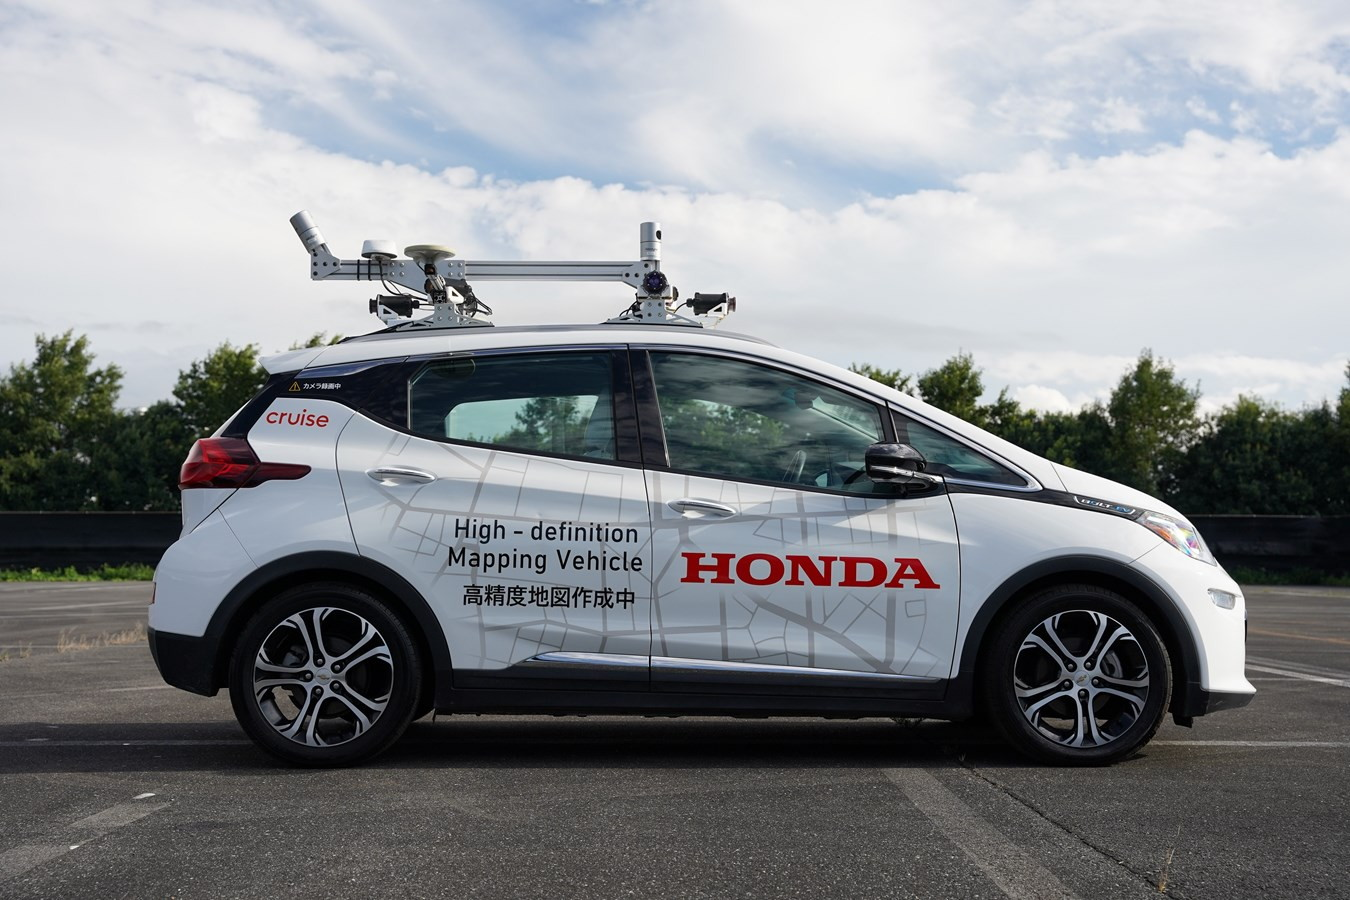 honda-to-launch-mobility-service-in-japan,-testing-begins-this-month